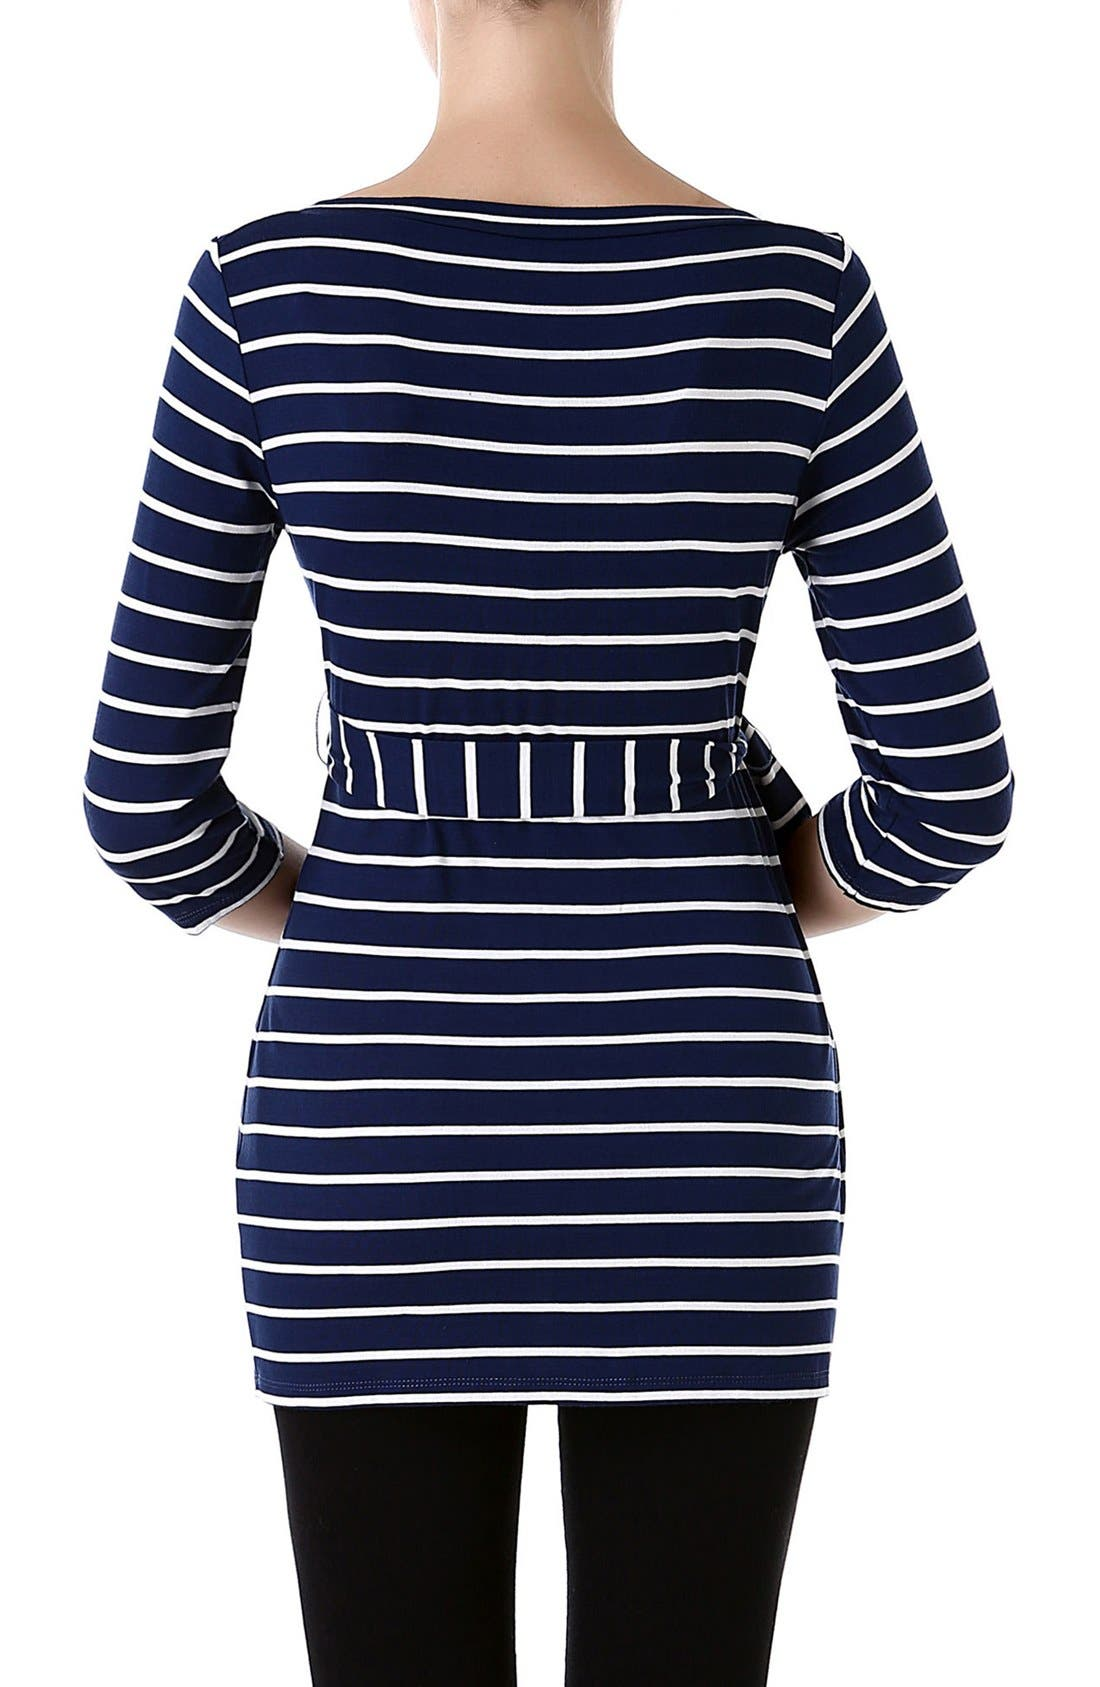 'Whitney' Stripe Belted Maternity Top,                             Alternate thumbnail 2, color,                             NAVY/ IVORY